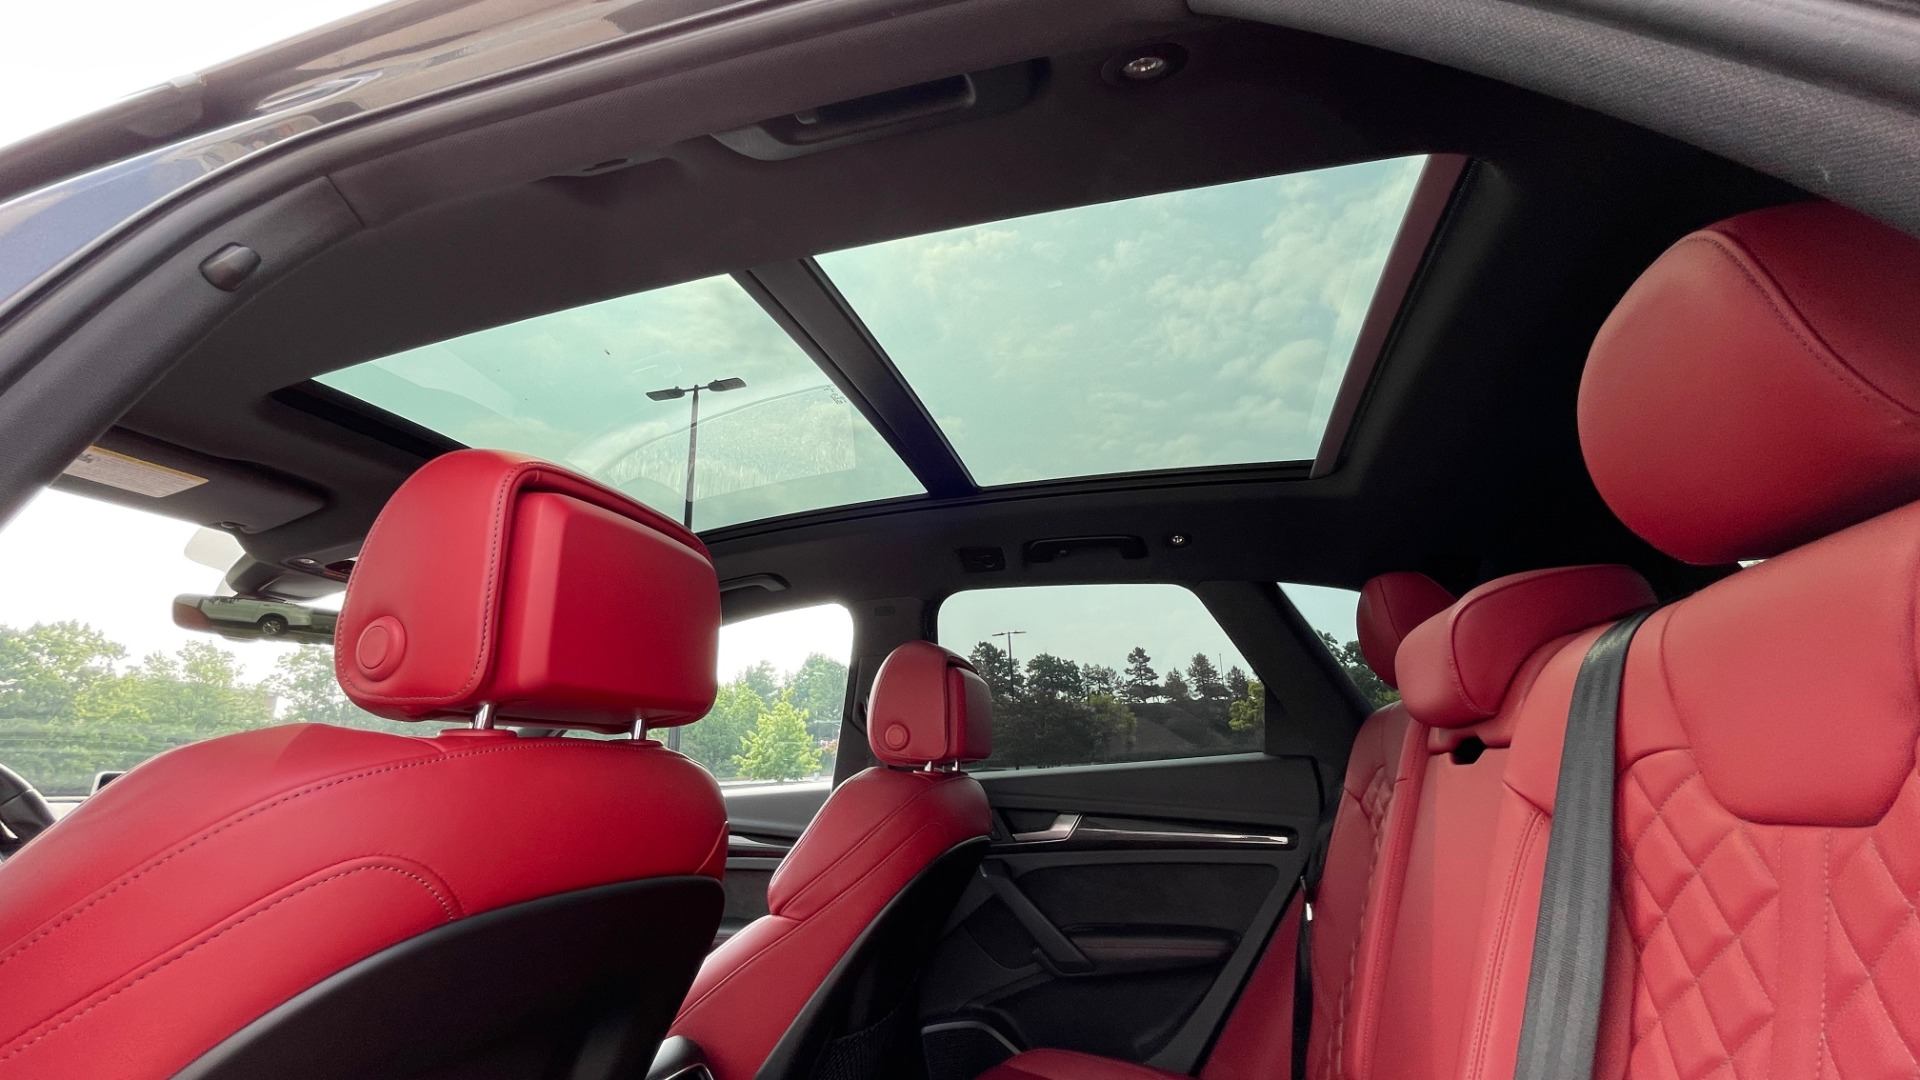 Used 2018 Audi SQ5 PREMIUM PLUS / S-SPORT / NAV / B&O SND / SUNROOF / REARVIEW for sale $43,995 at Formula Imports in Charlotte NC 28227 63